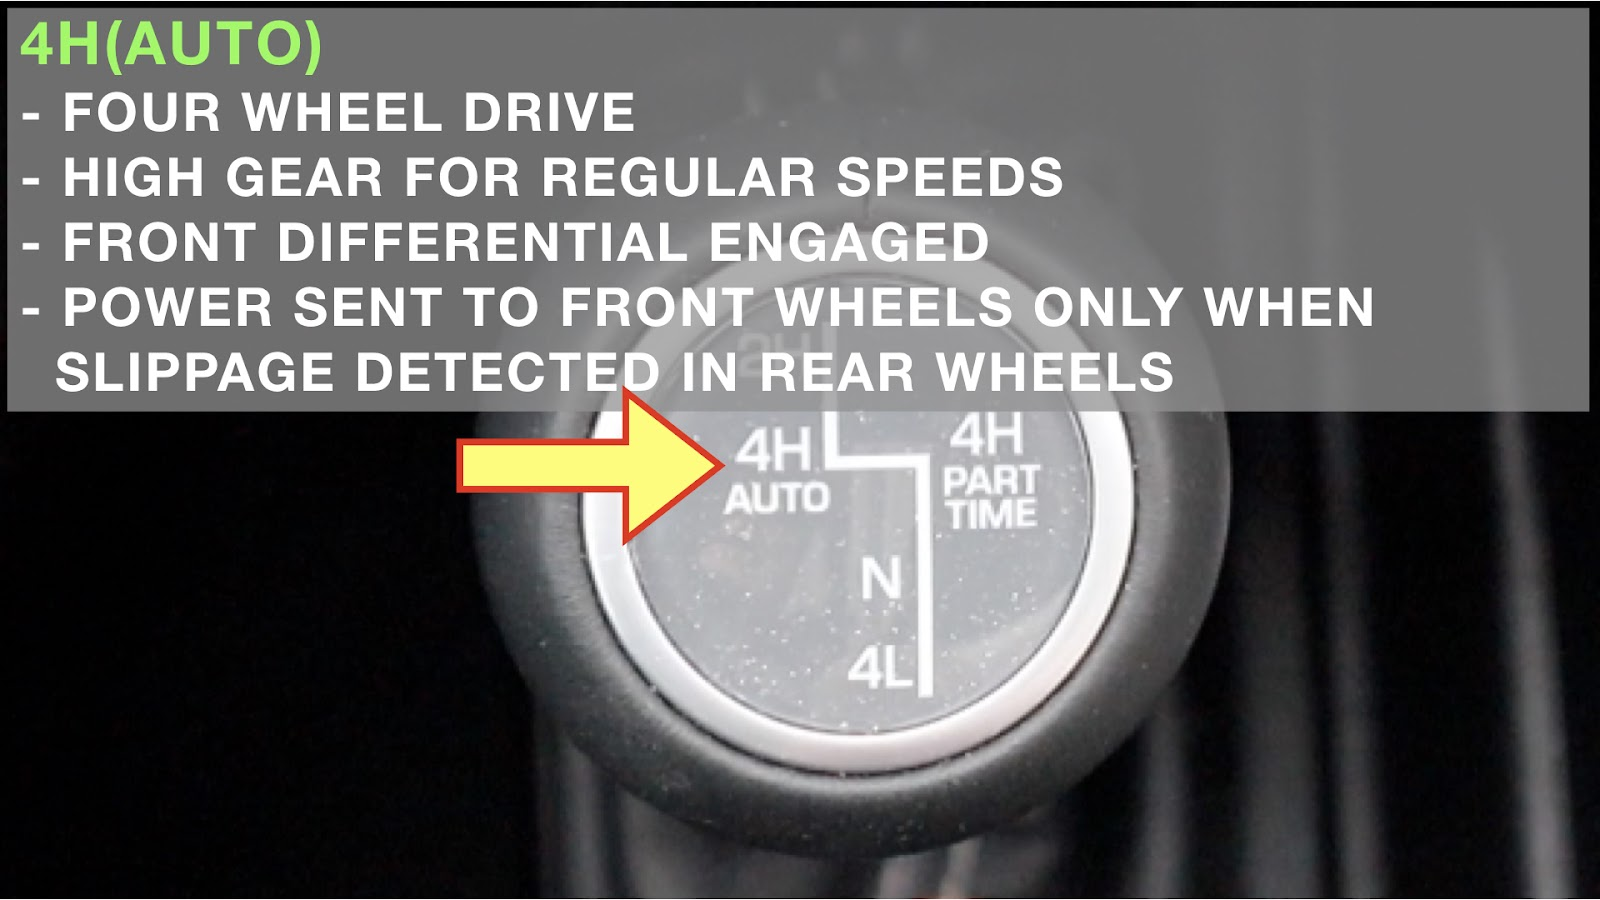 Image showing the 4H(Auto) setting when using 4wd in a Jeep Wrangler